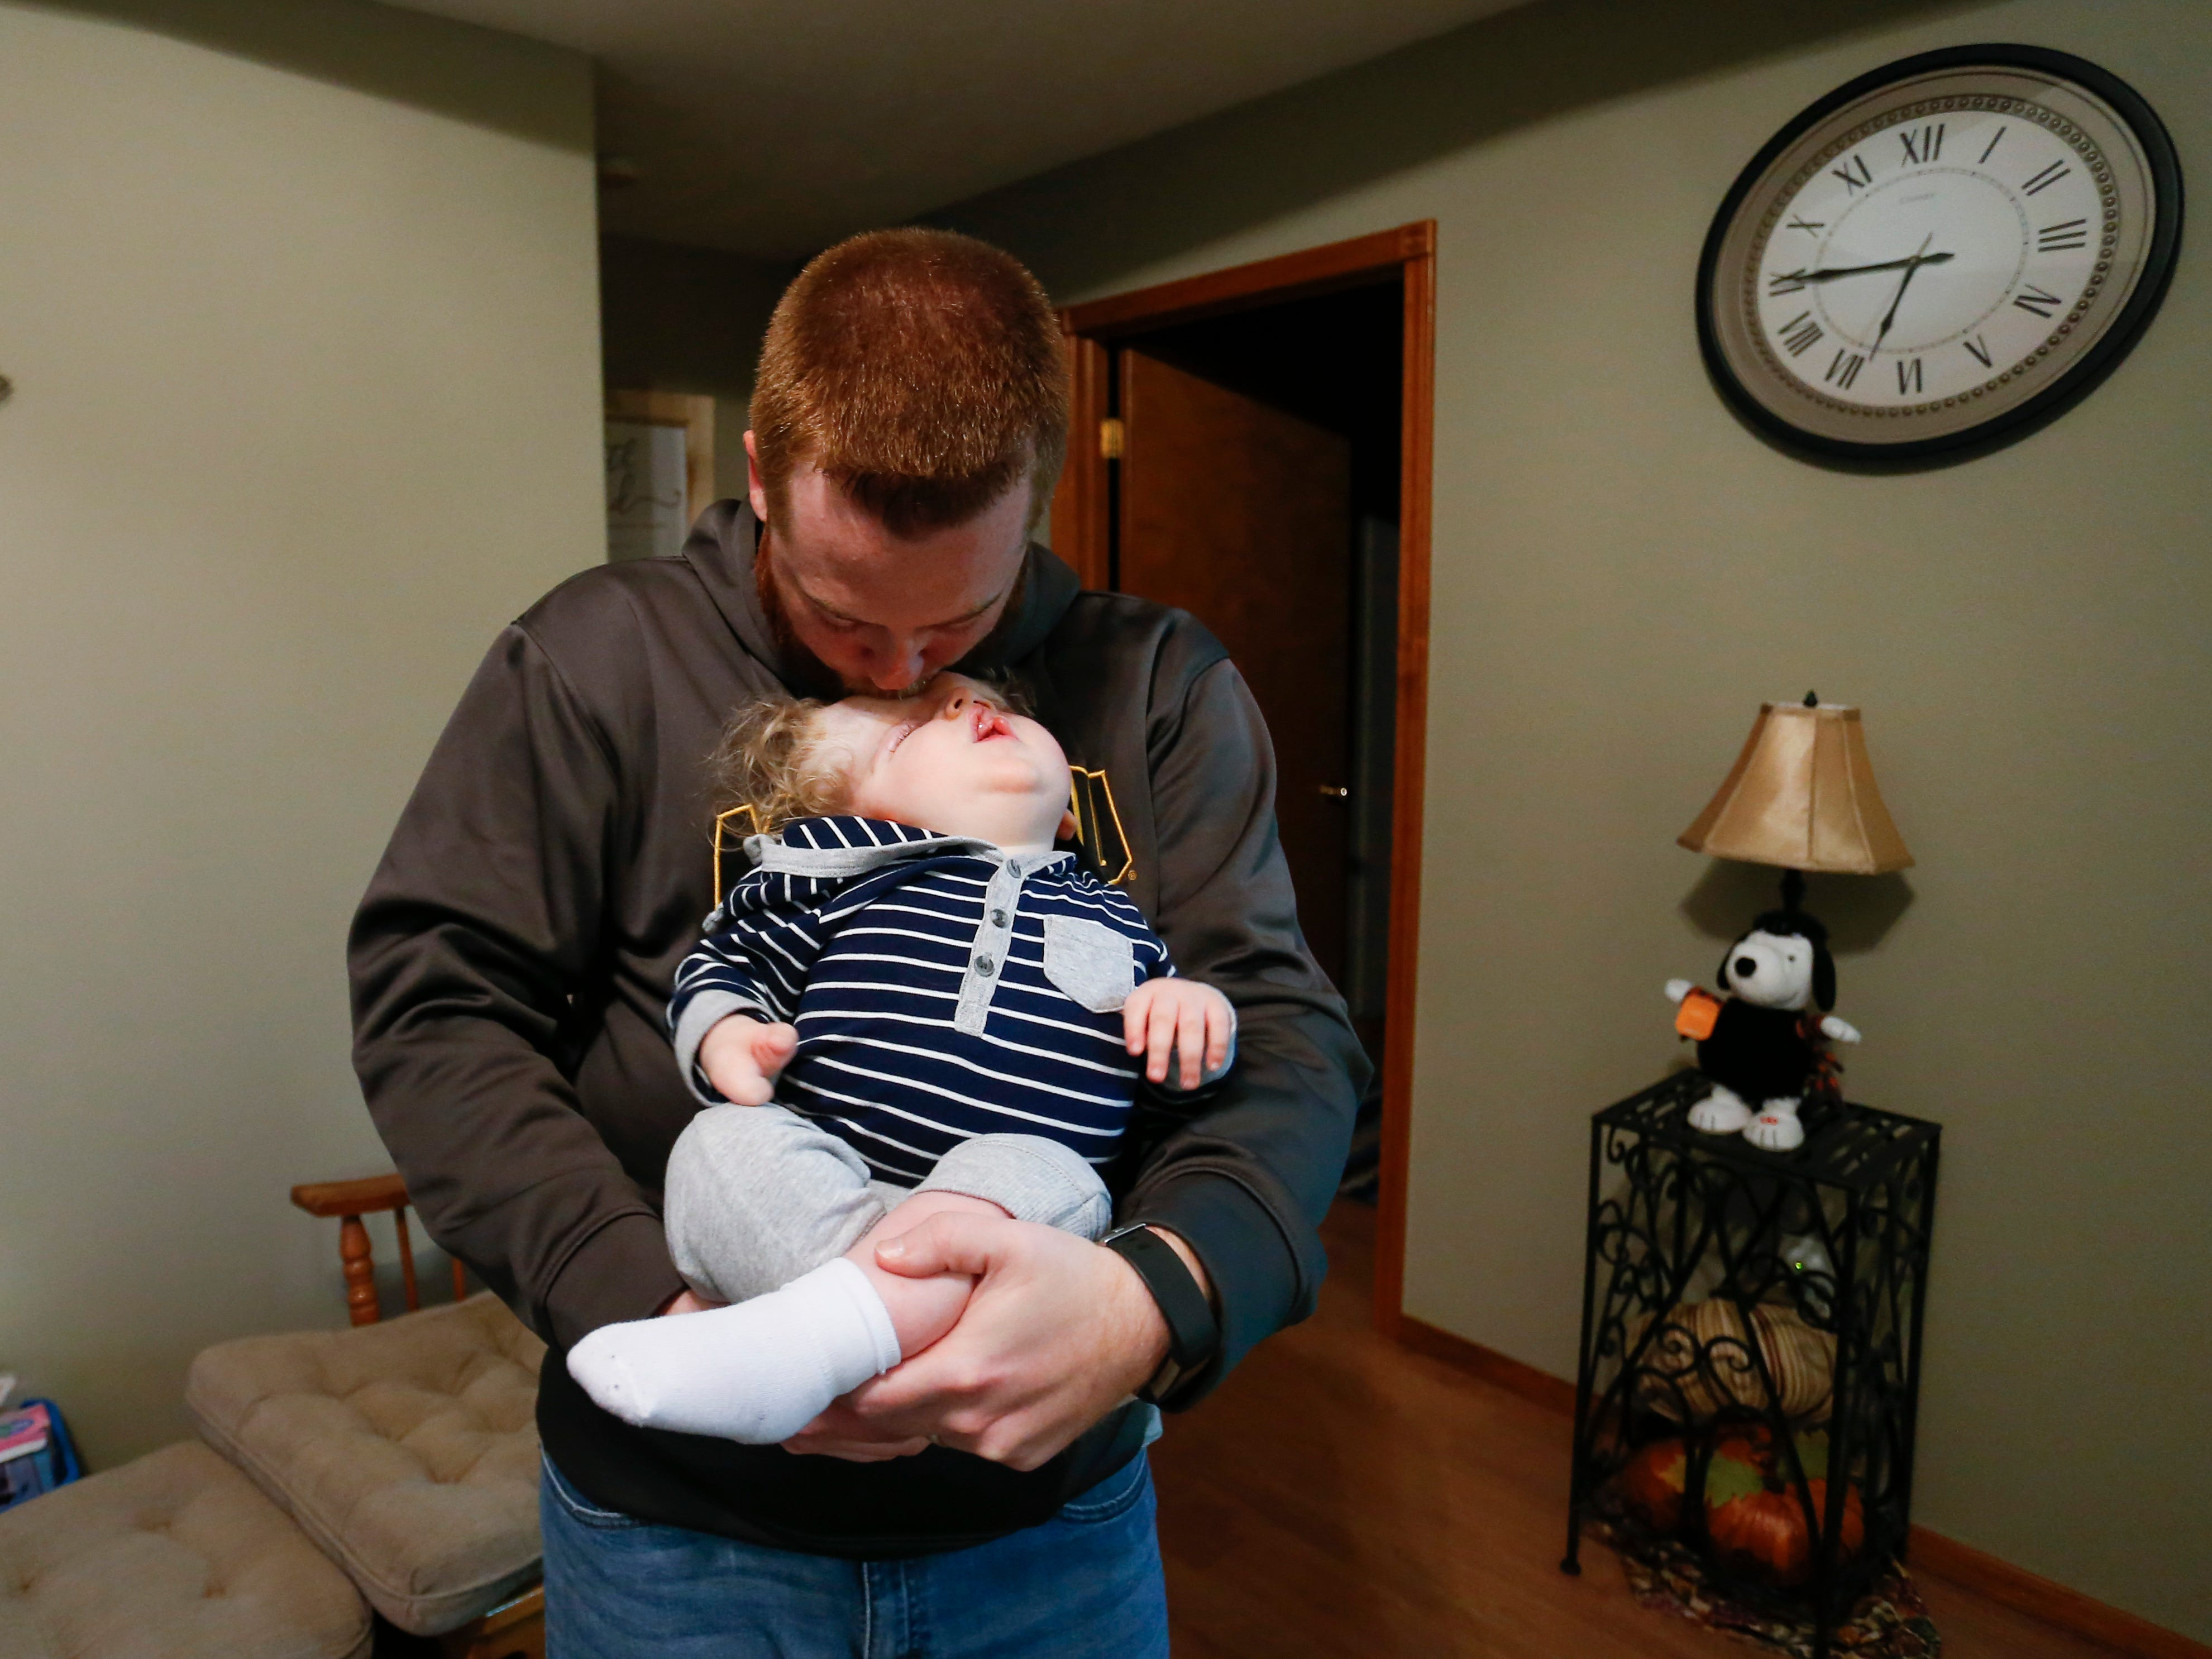 Tom Masterson kisses his one-year-old son Owen on his forehead as he holds him at their home on Thursday, October 11, 2018. Owen was born missing the top part of his skull and was not expected to survive childbirth.